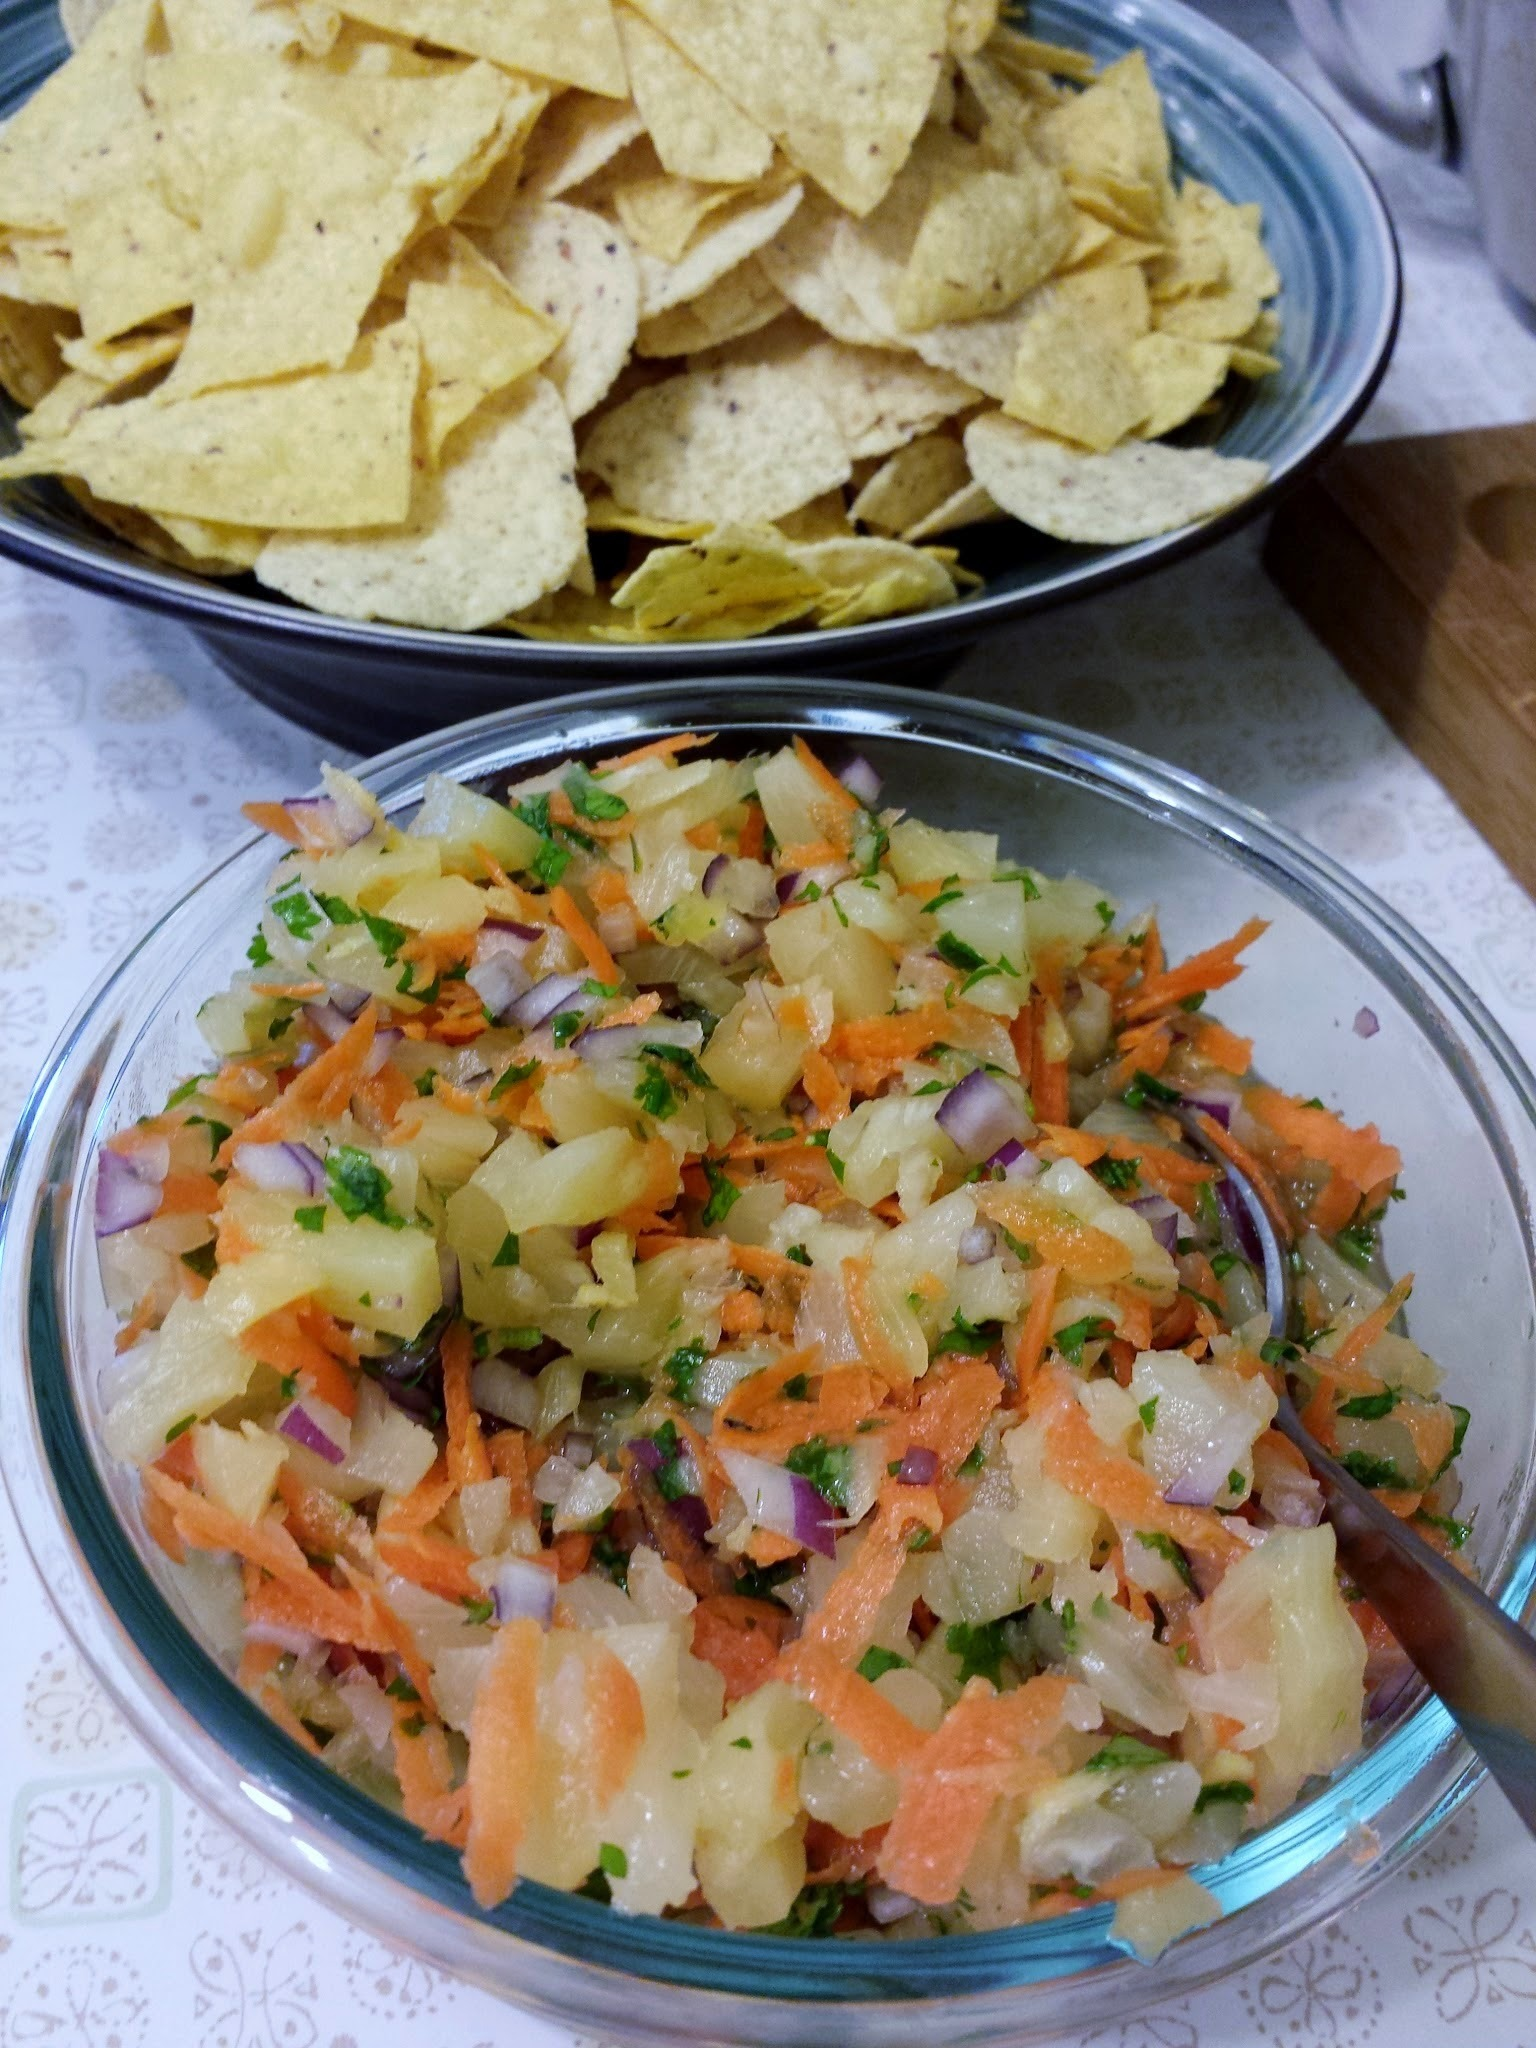 Ellie's Pineapple Salsa